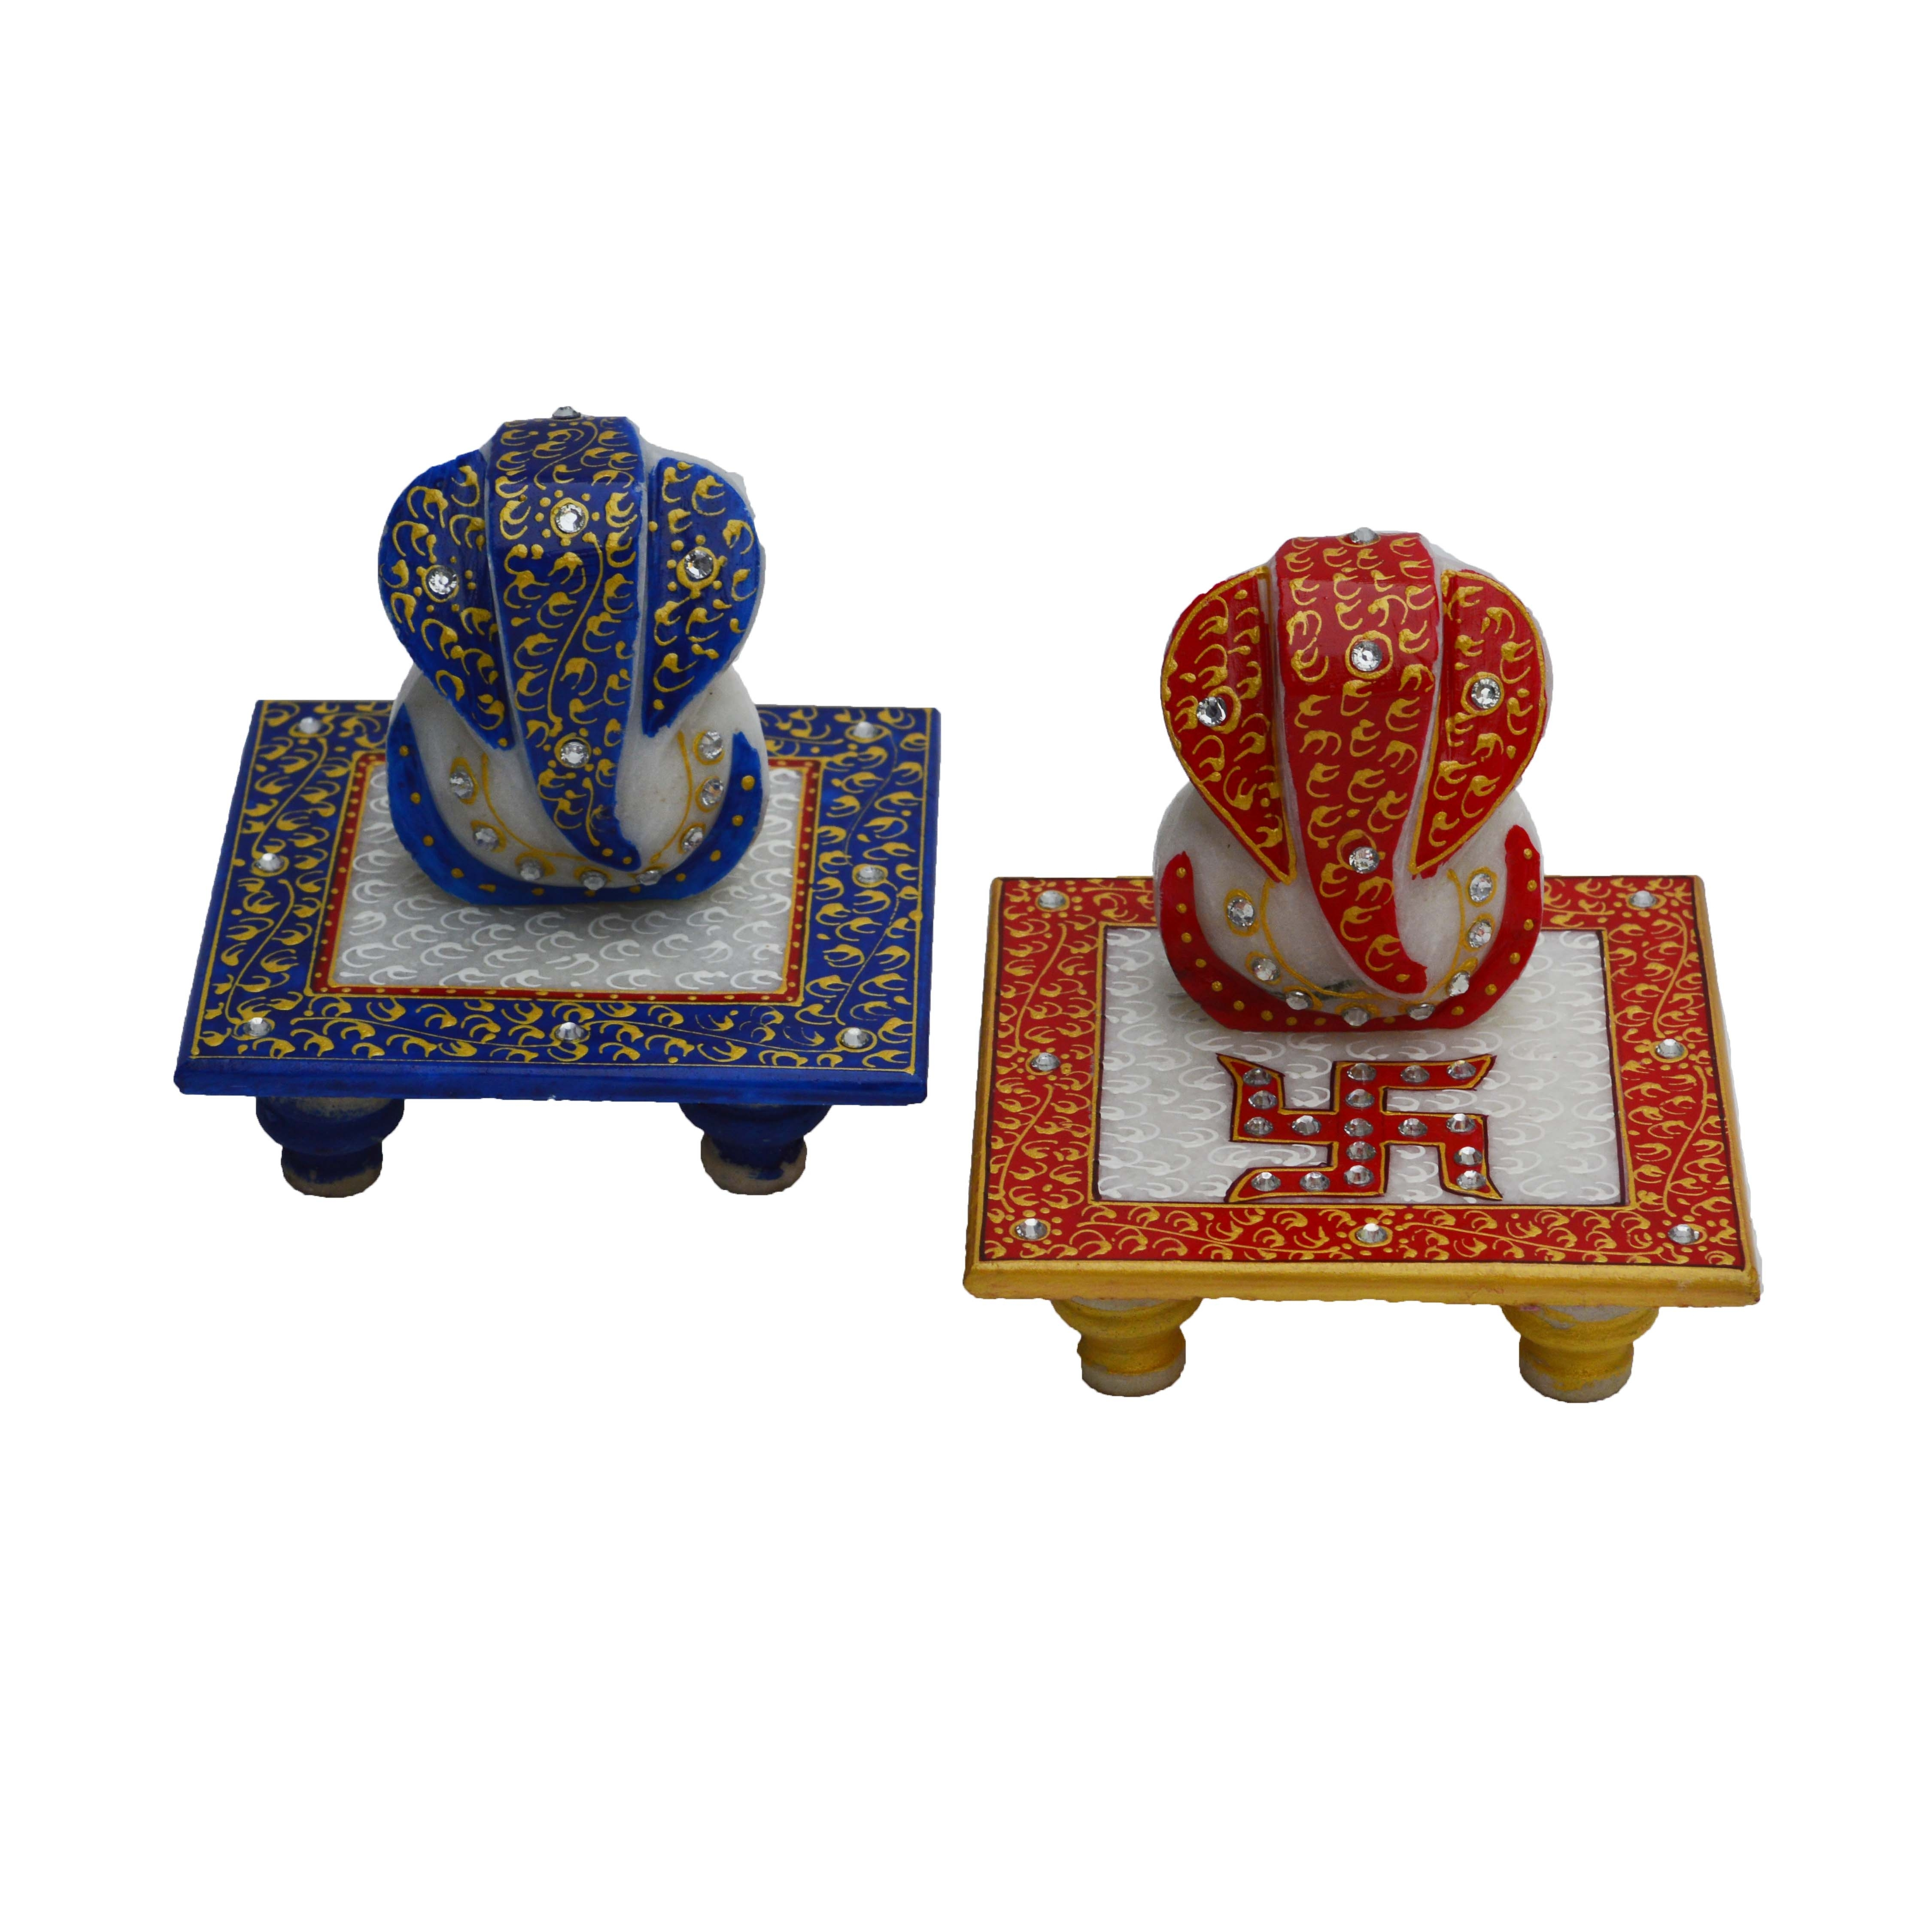 Set of Ridhi Sidhi Marble Chowkis Indian Home Decor